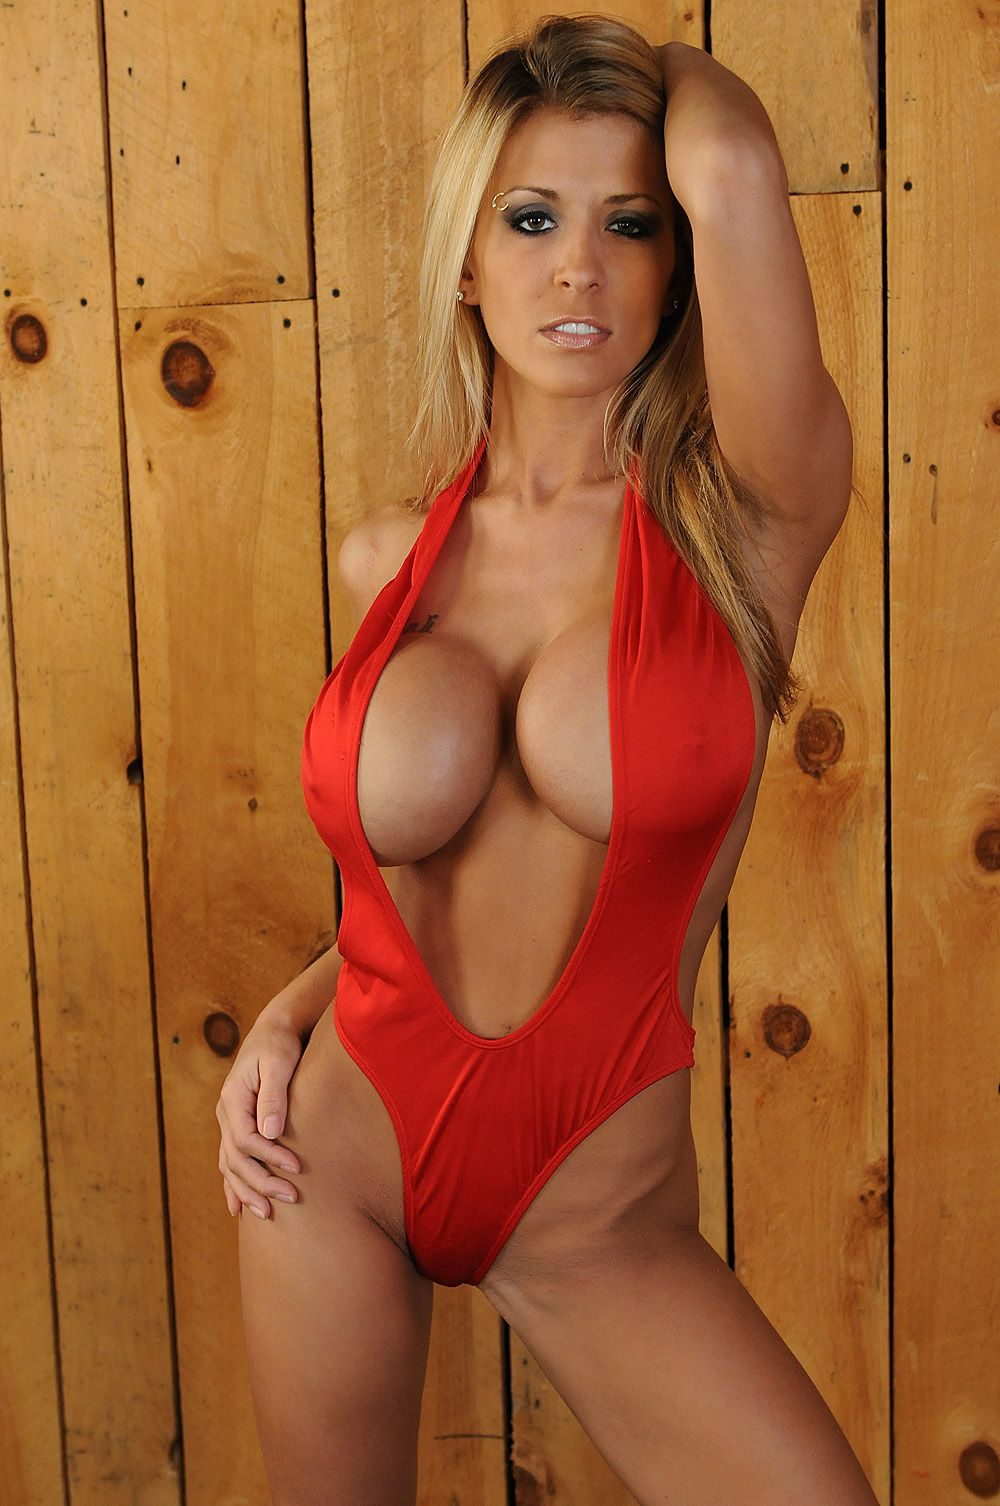 Valerie Cormier Topless Simple sexy red swimsuit modeledbusty blonde #fitness model : if you